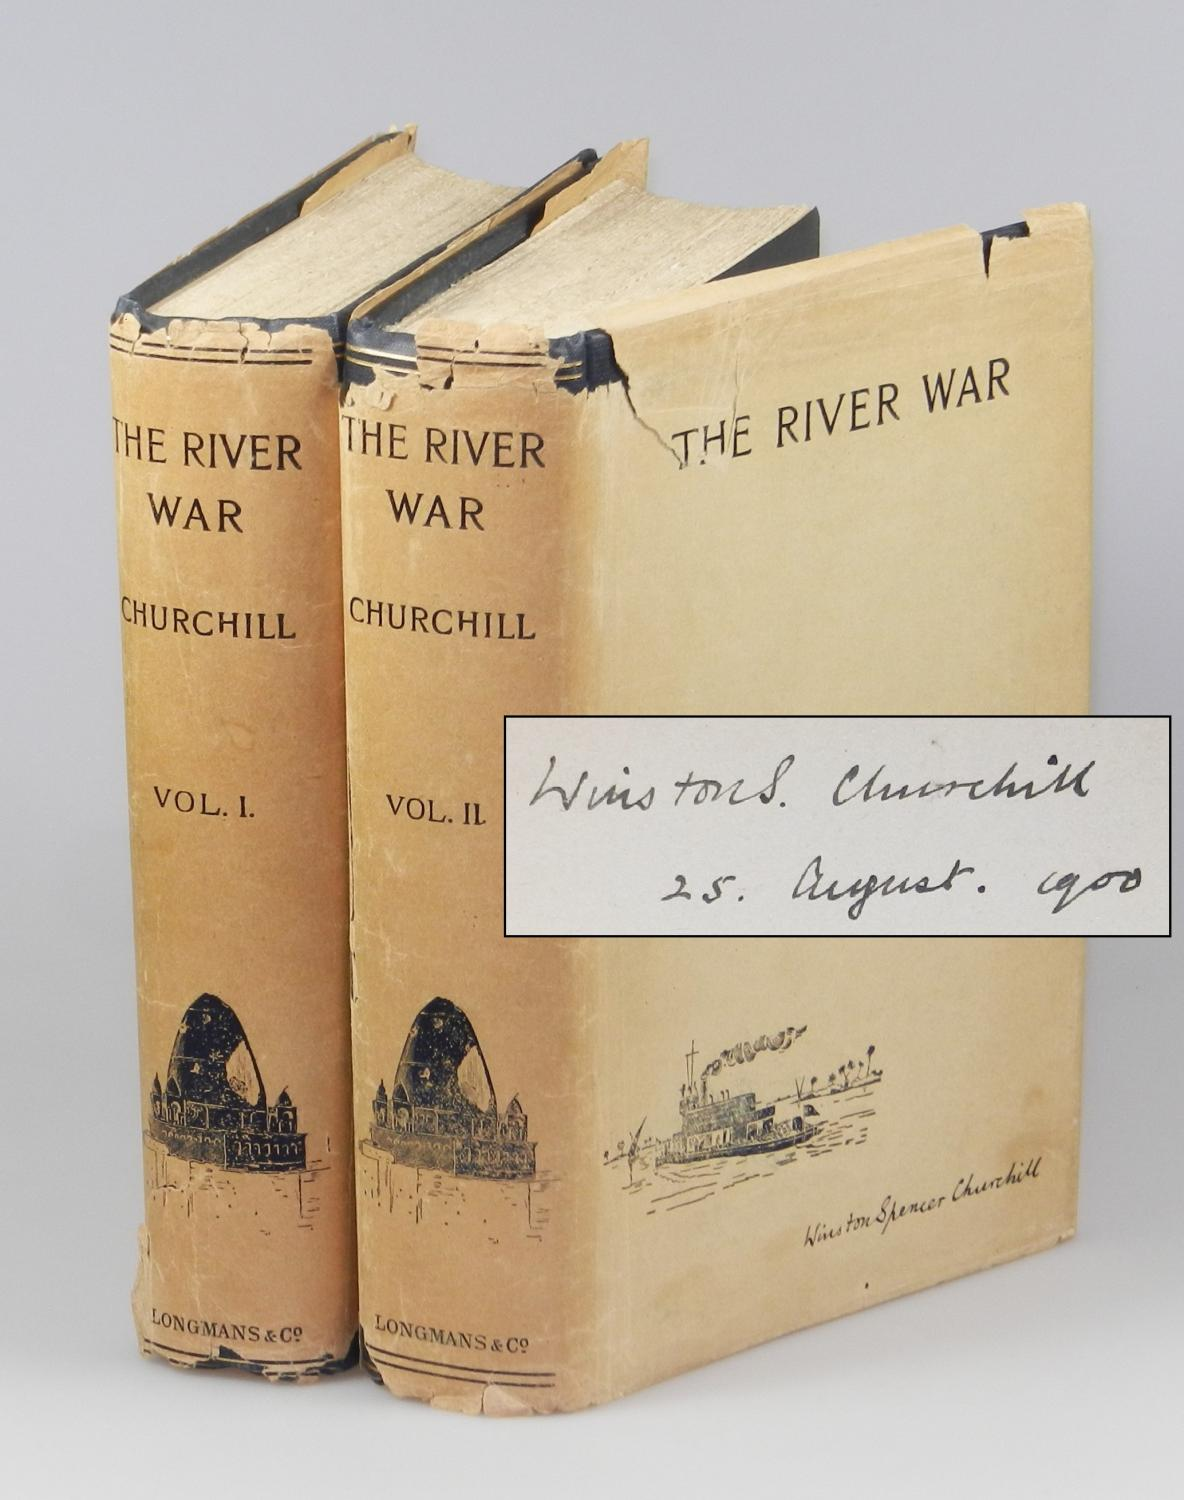 The River War, the only jacketed volumes known to exist, signed and dated by Churchill on 25 August...